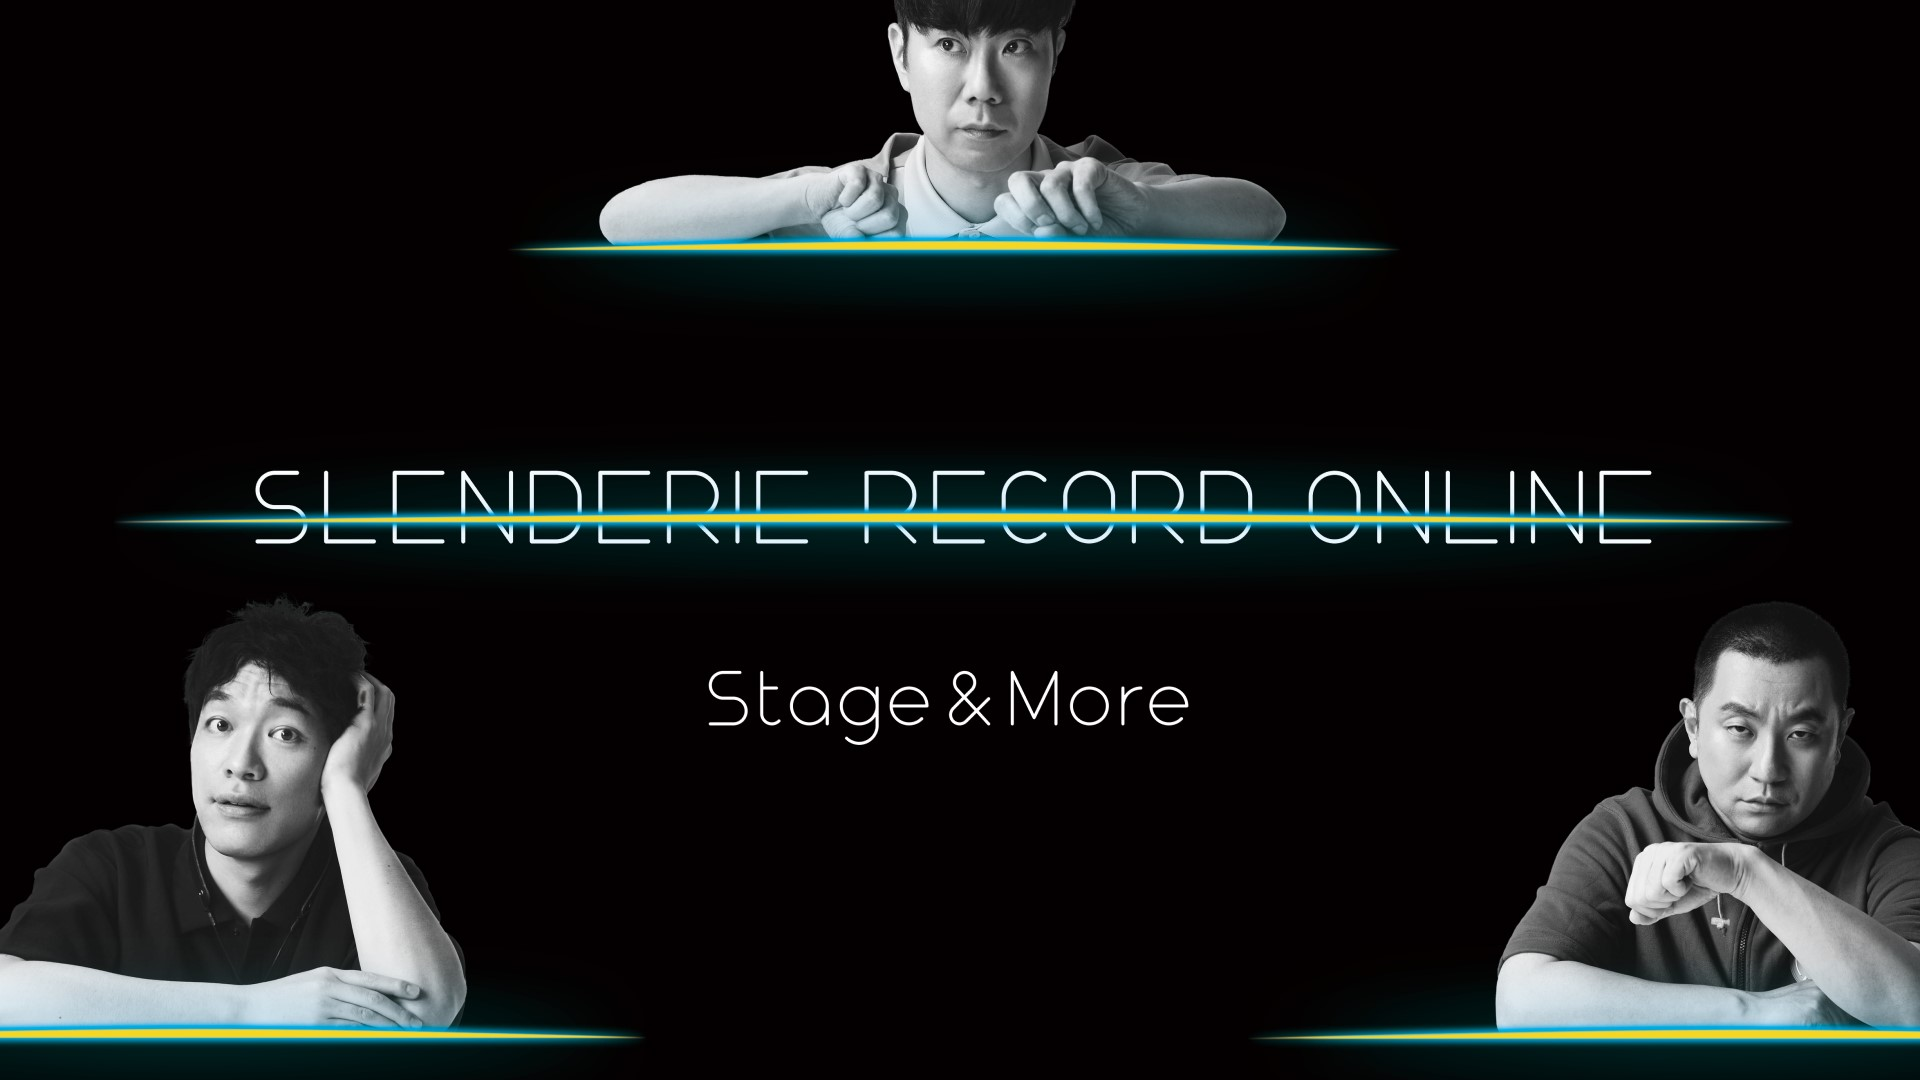 SLENDERIE RECORD Online Stage & More   RG(レイザーラモン) 川島明(麒麟) 藤井隆 (AI未定)